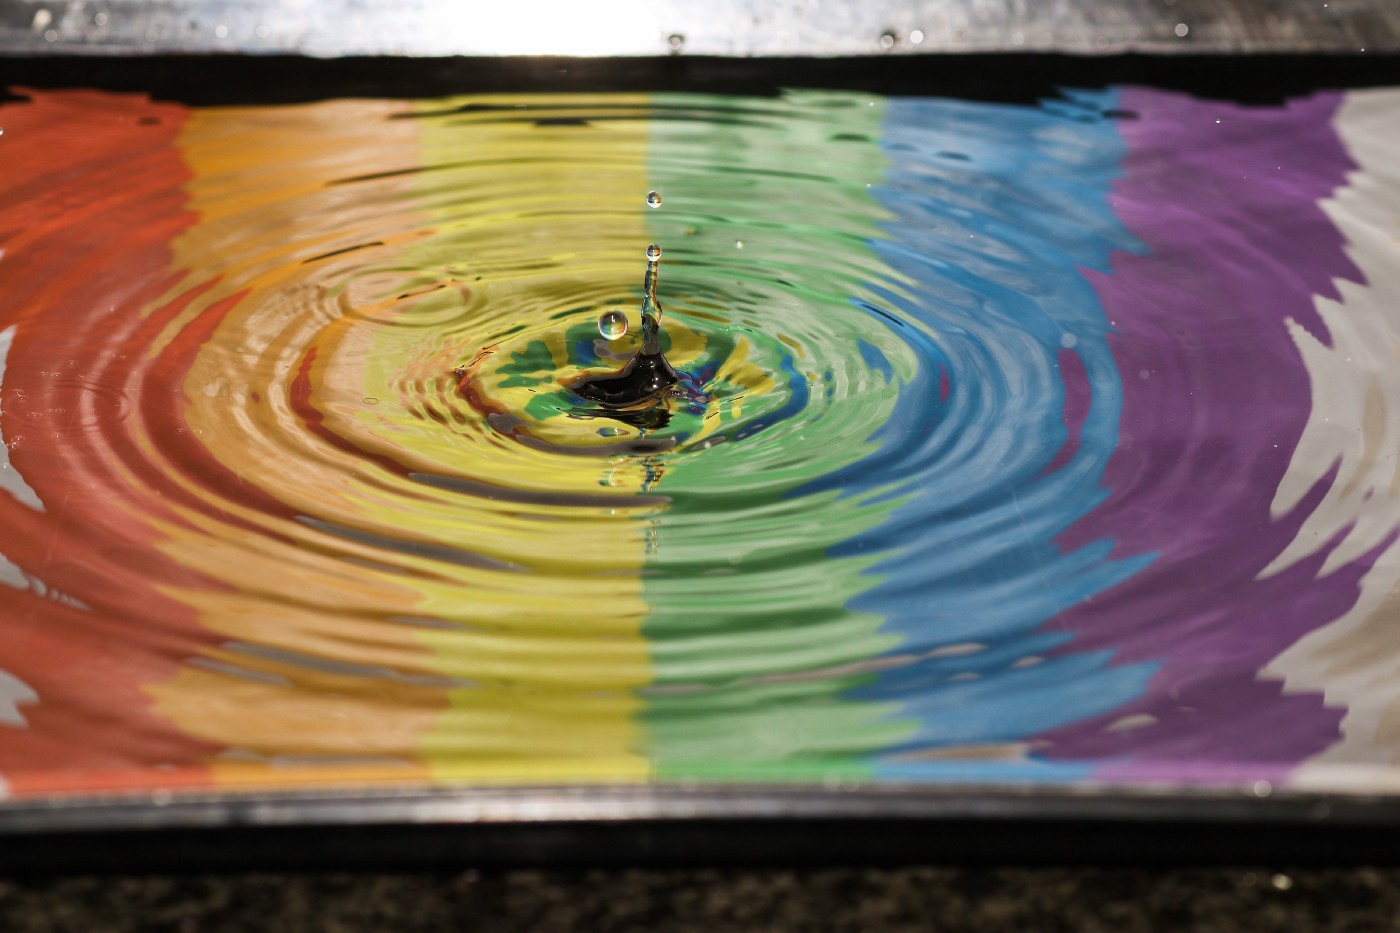 A pool of water with rainbow coloring and ripples in the water